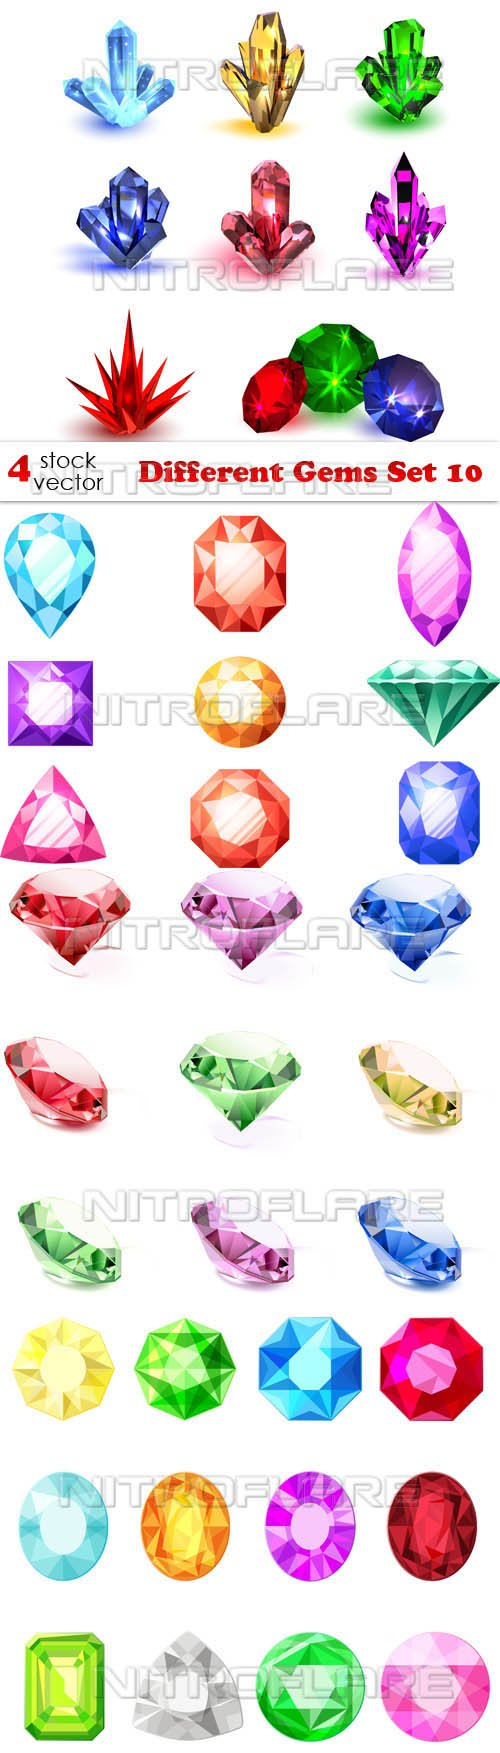 Vectors - Different Gems Set 10